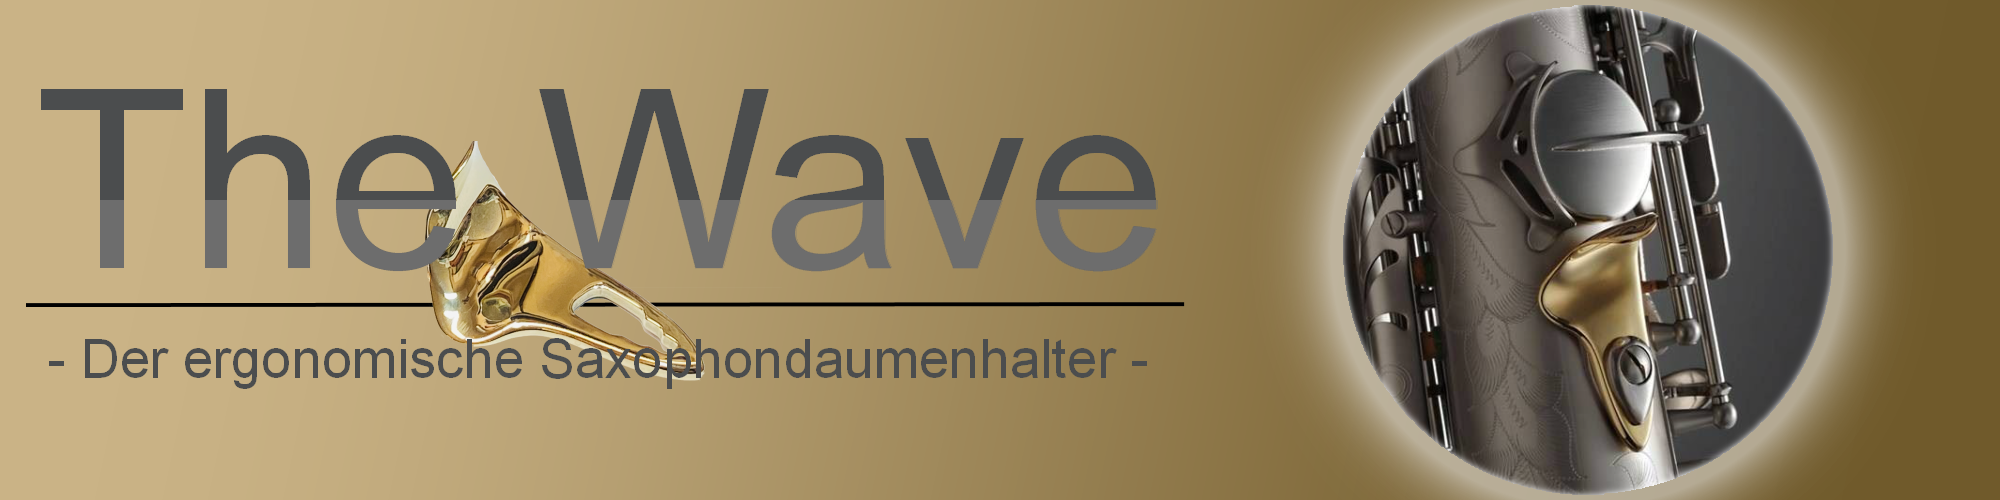 The Wave Daumenhalter Saxophon